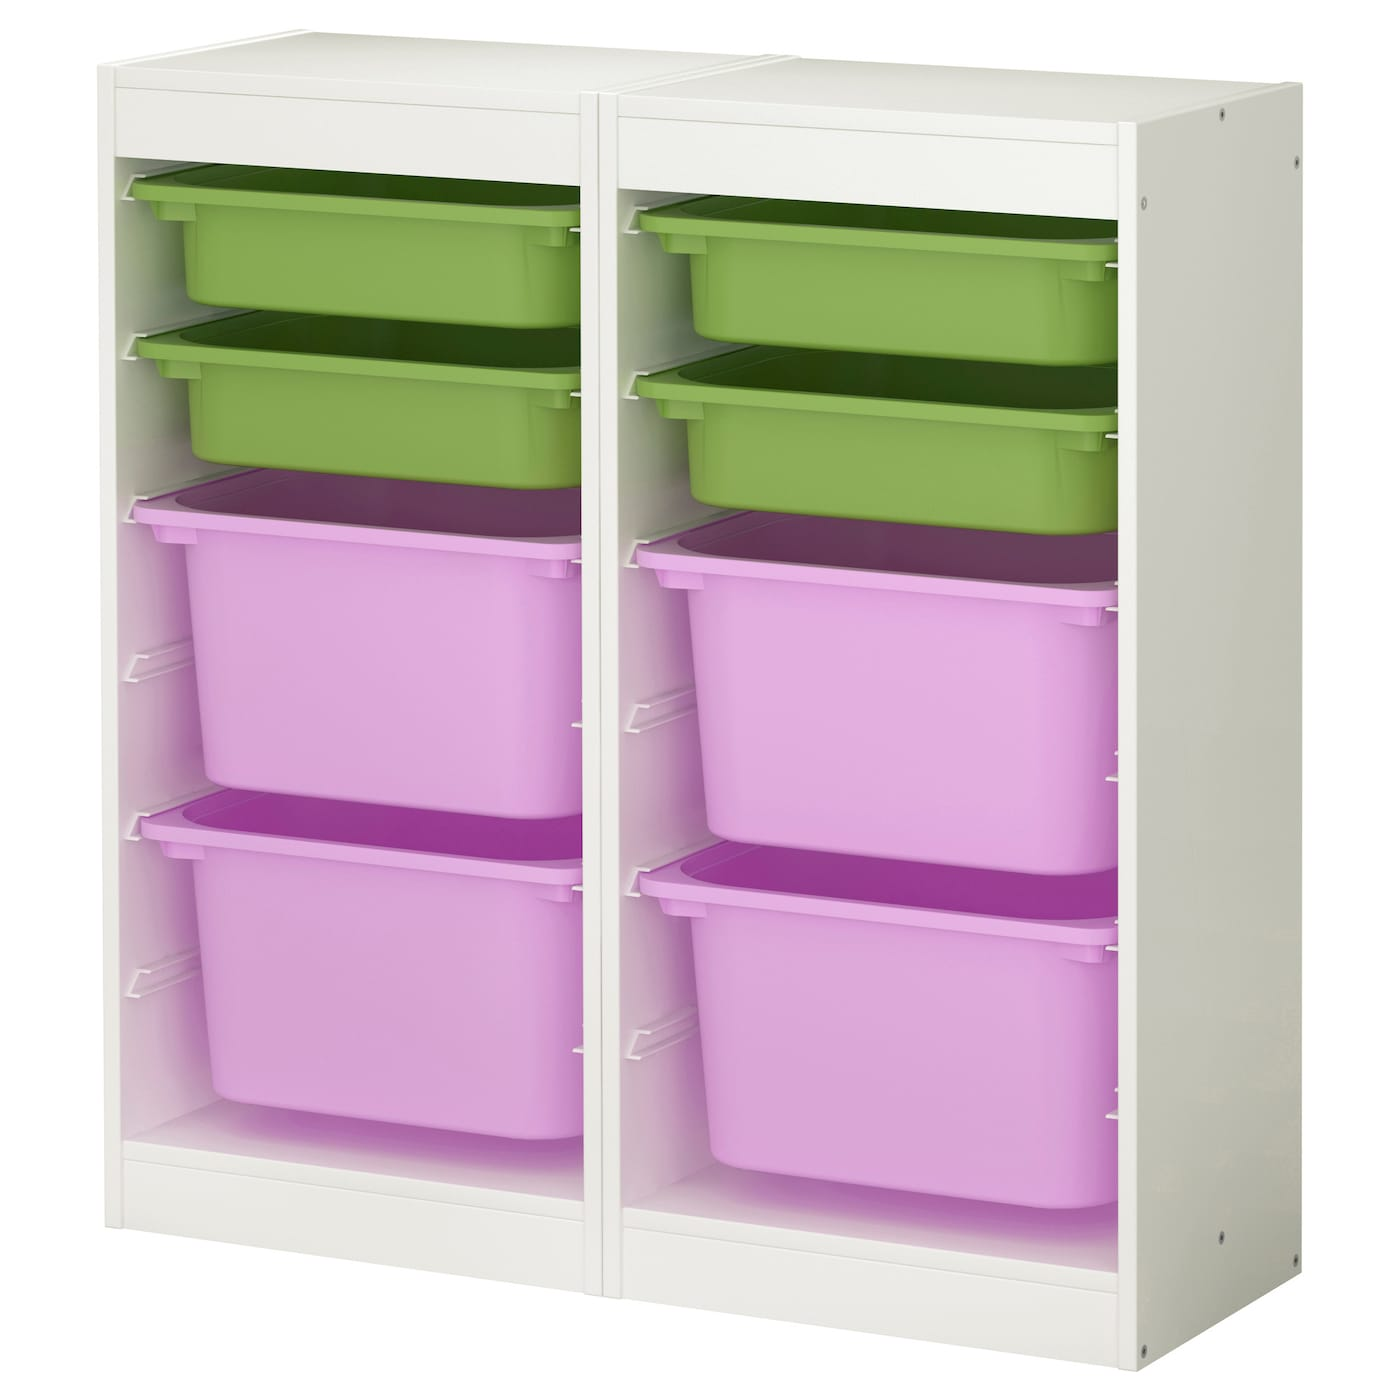 trofast storage combination whitemulticolour xx cm  ikea - ikea trofast storage combination